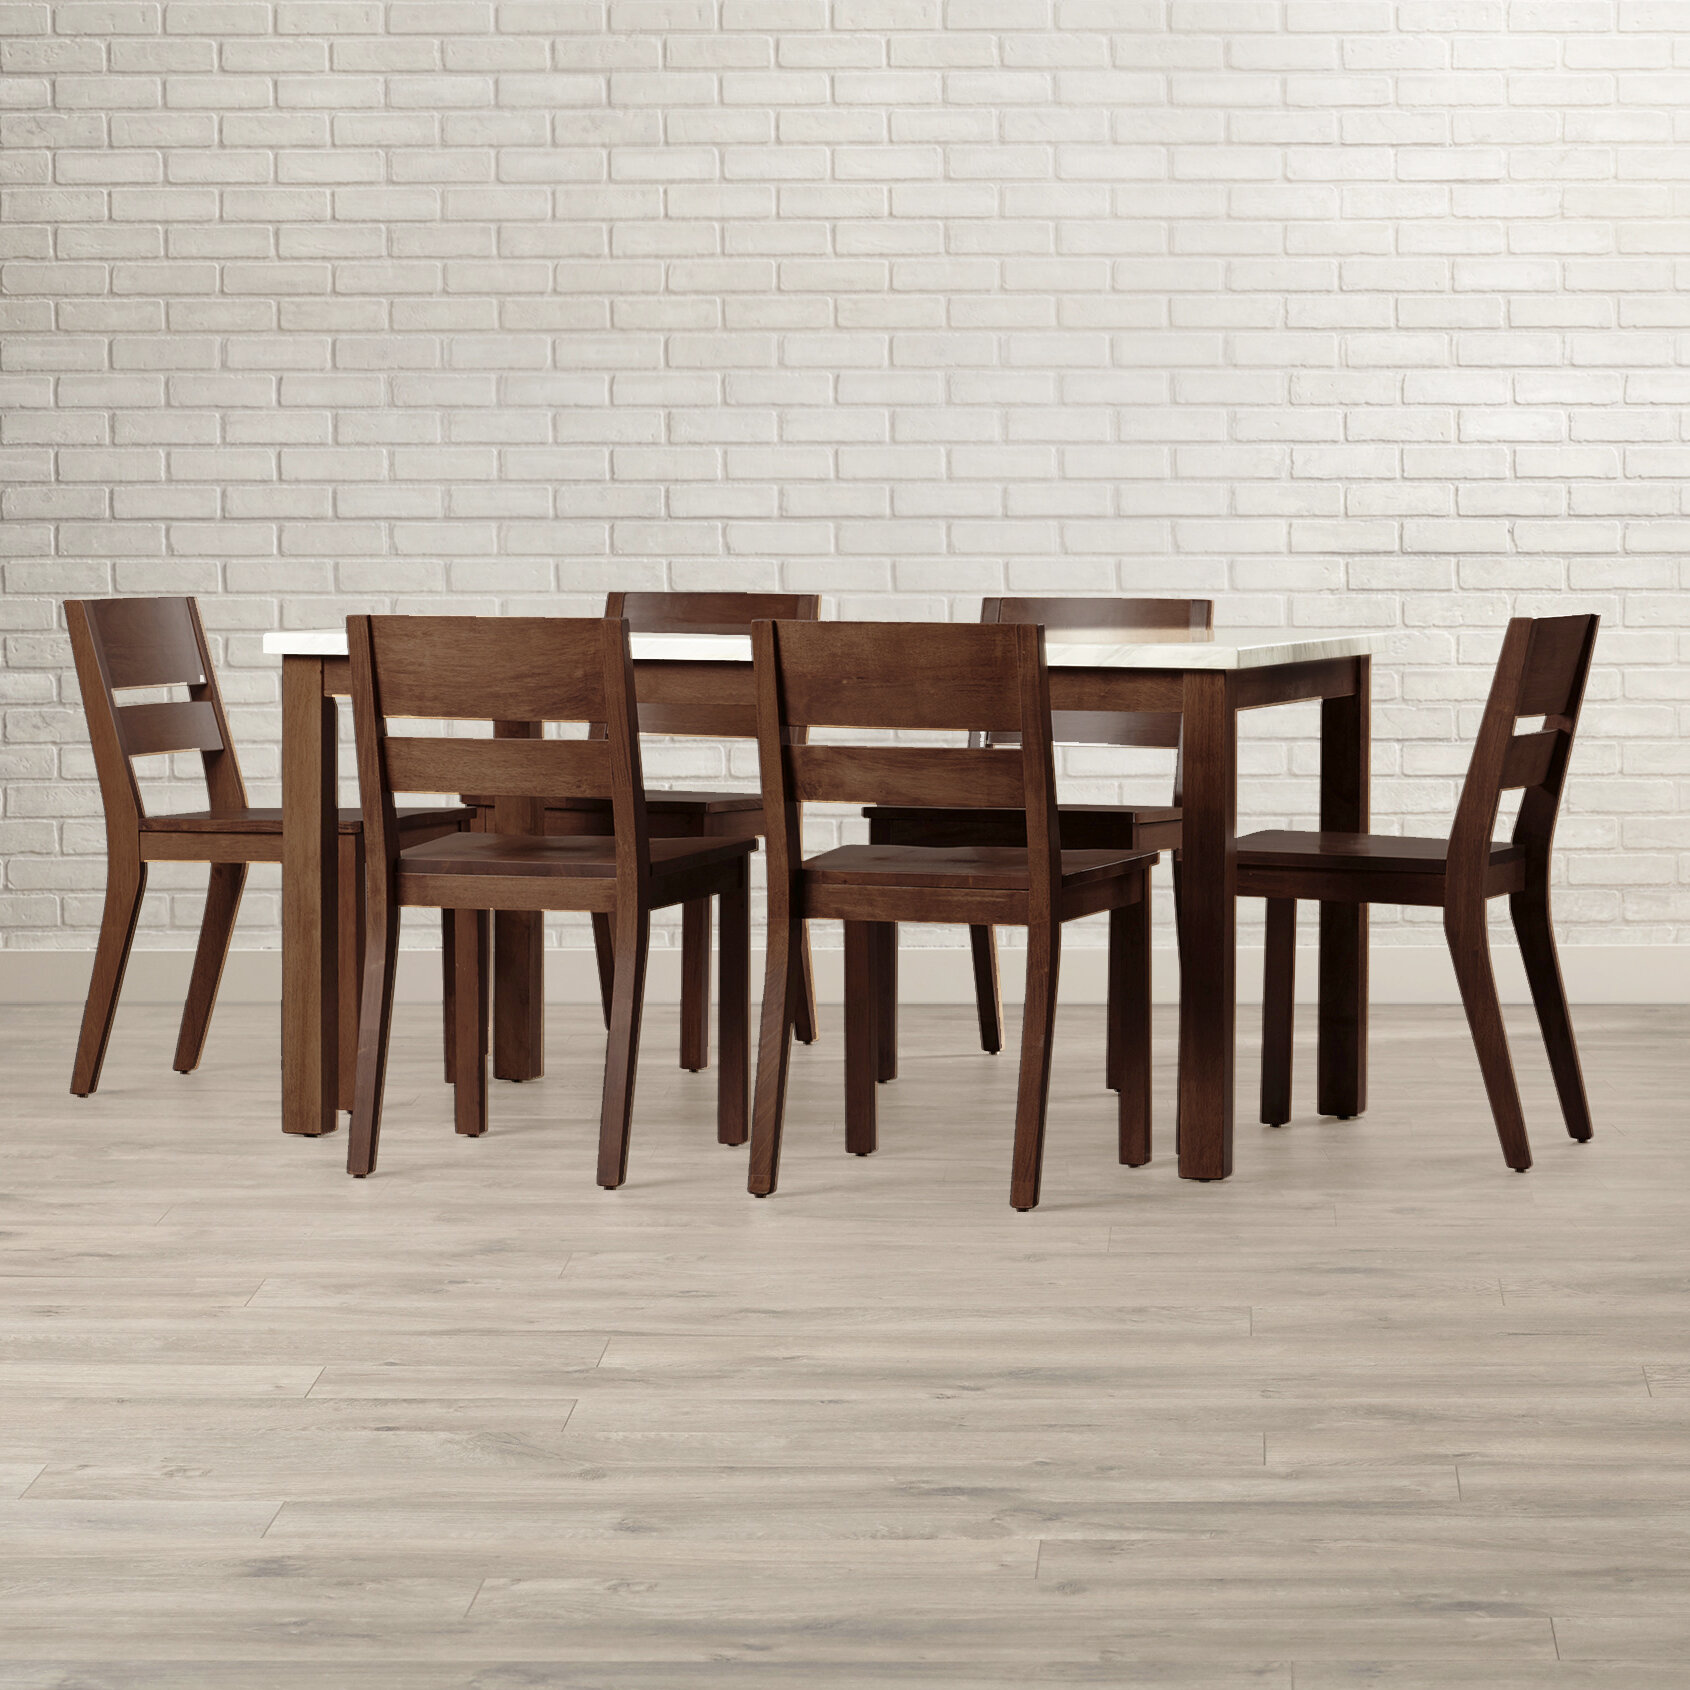 Brayden Studio Medea 7 Piece Dining Set with Cushions BYST5019 Color: Brown advise